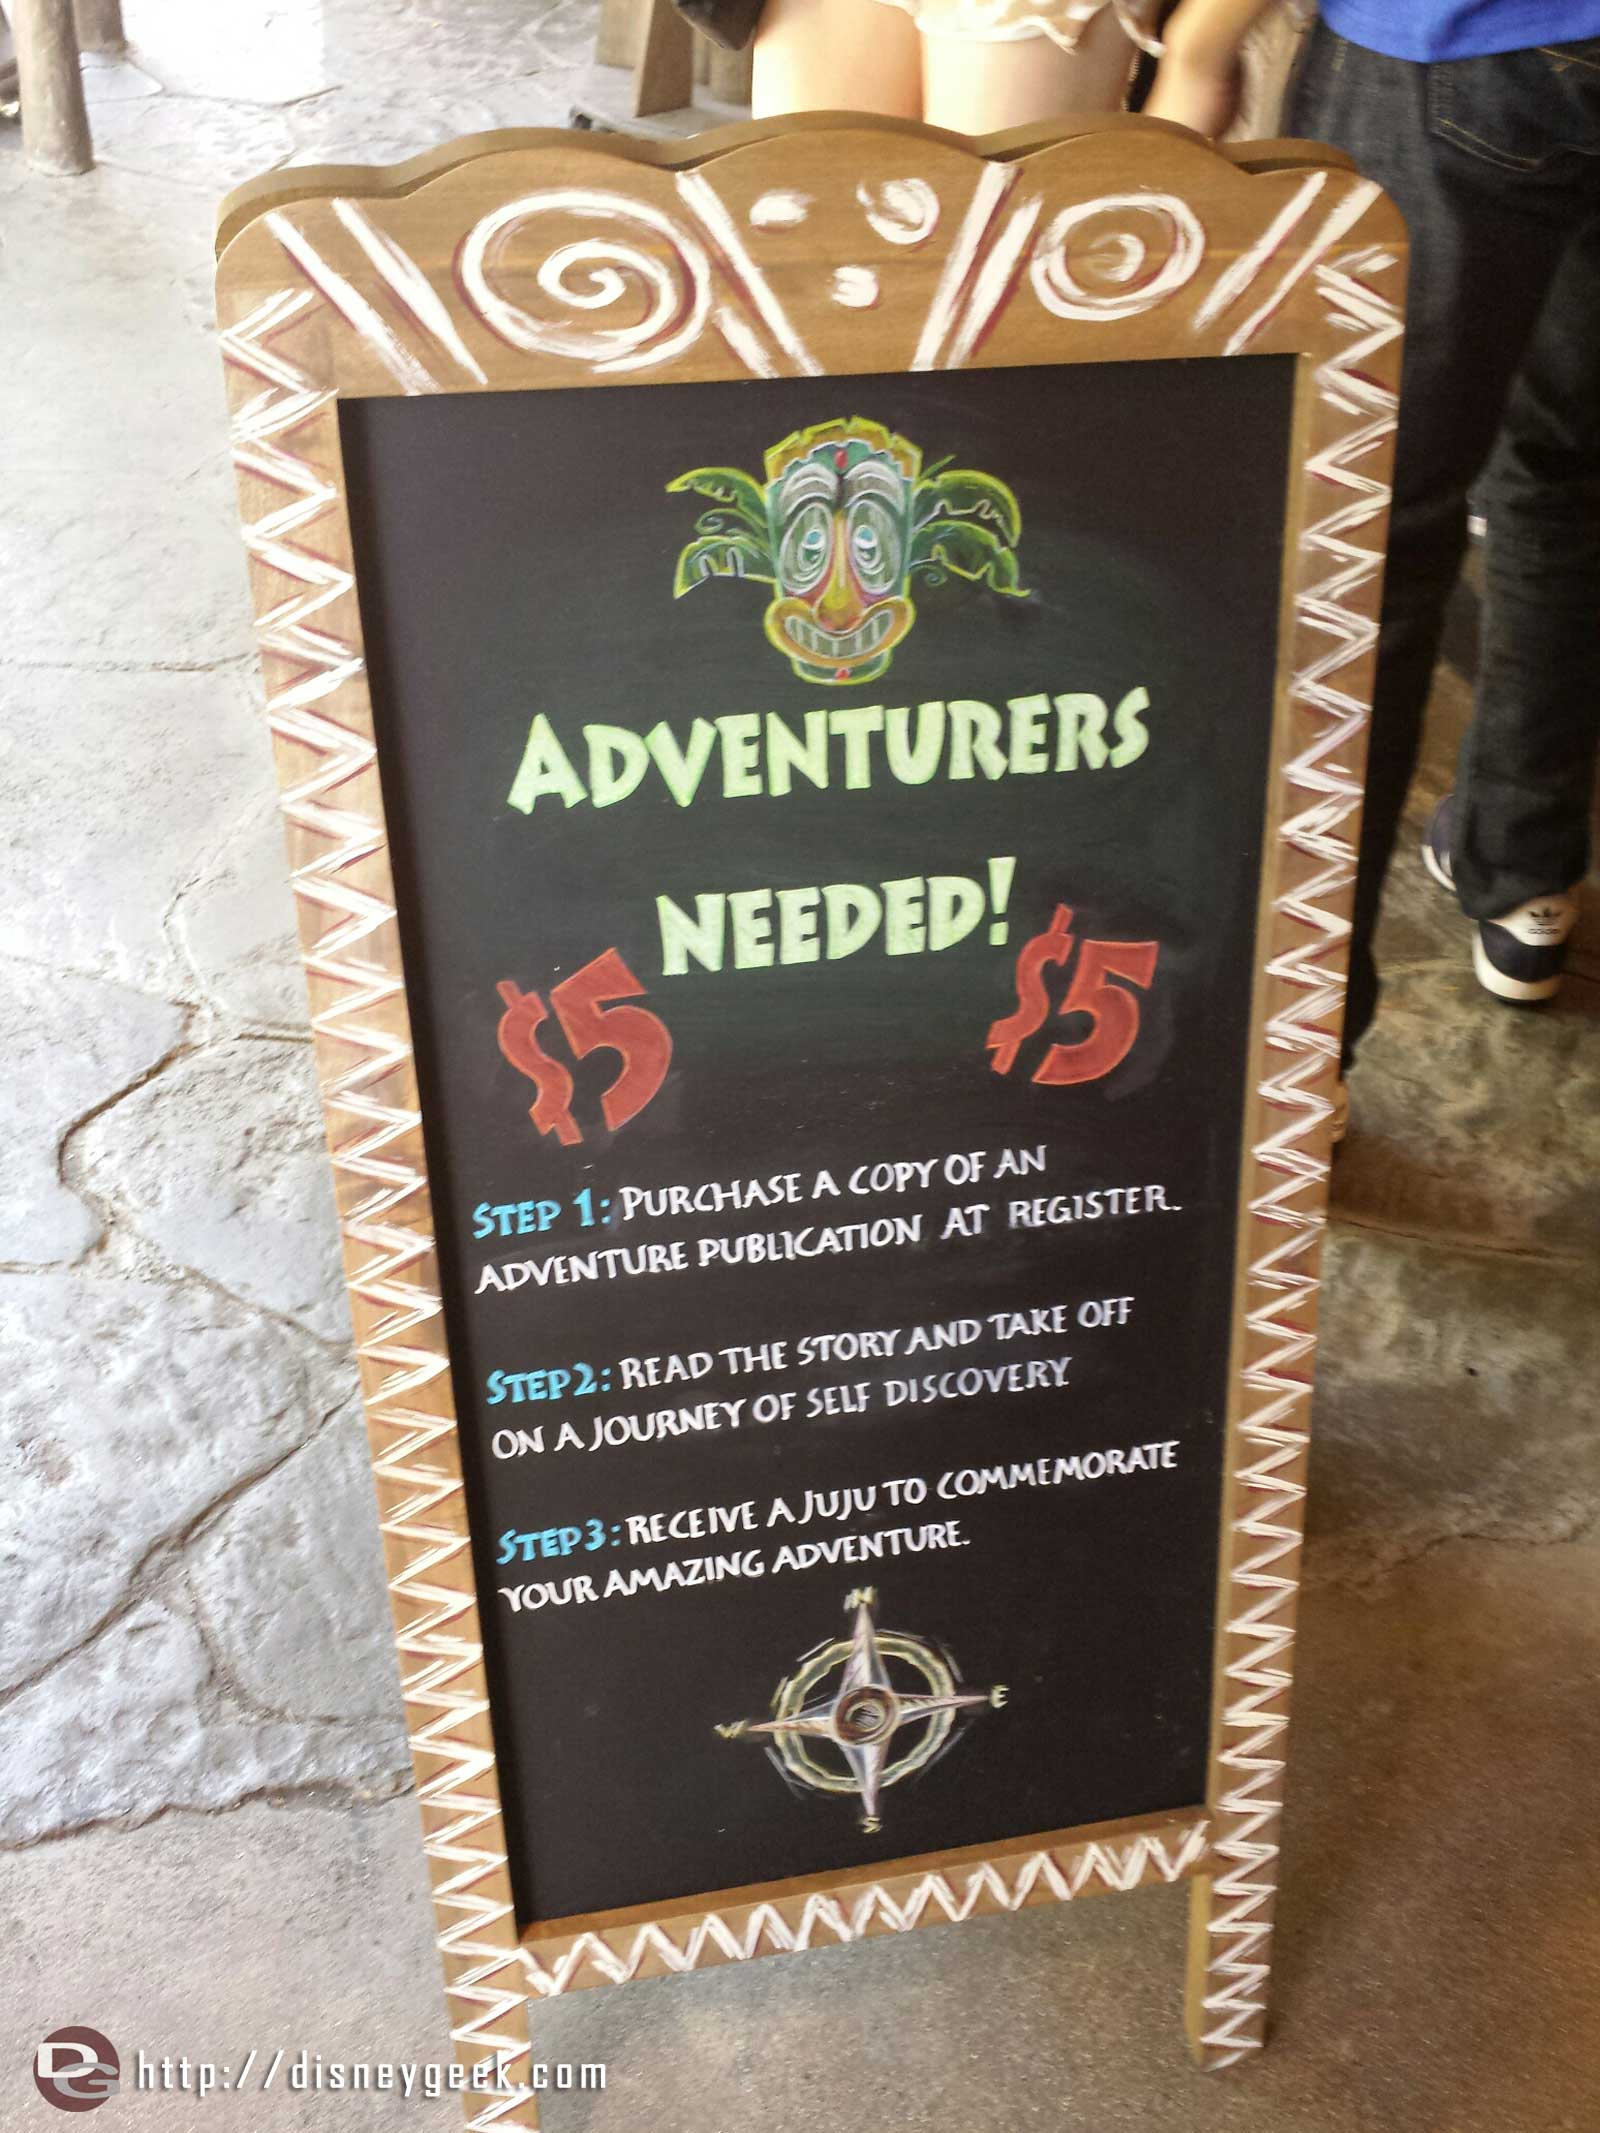 The Adventure Trading Co procedures